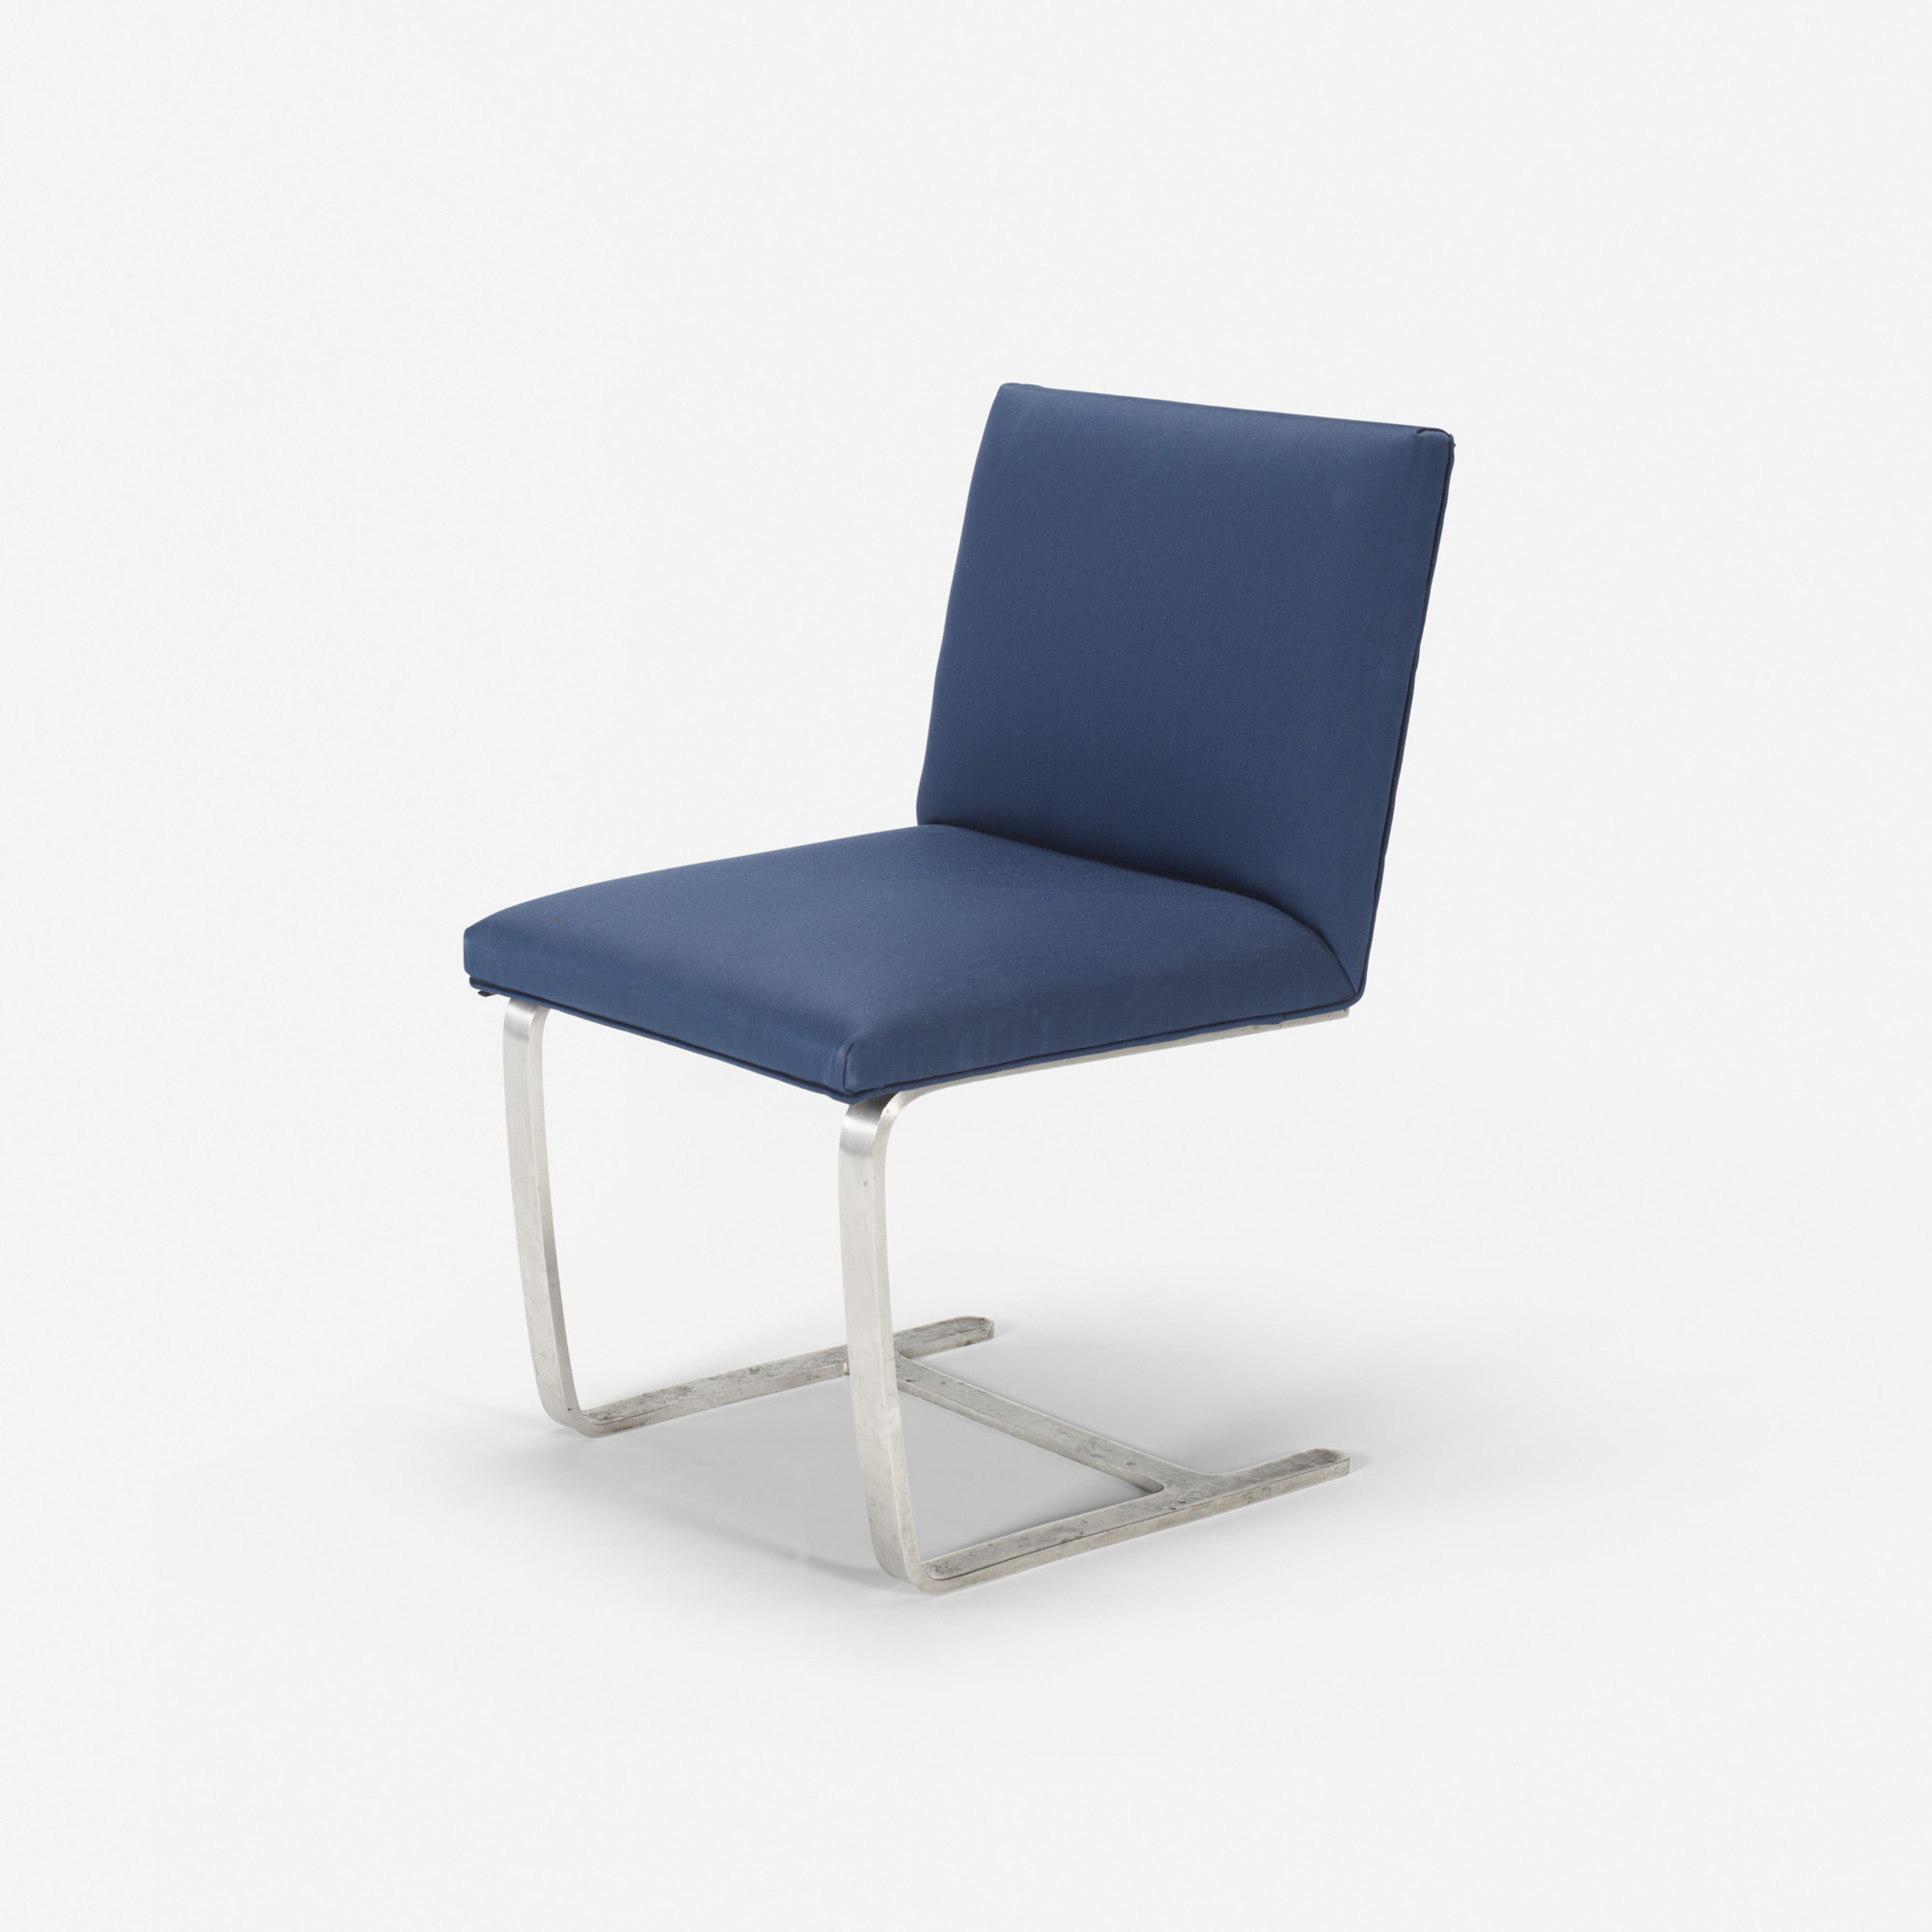 219: Ludwig Mies van der Rohe / Custom Brno side chair from The Four Seasons (1 of 1)